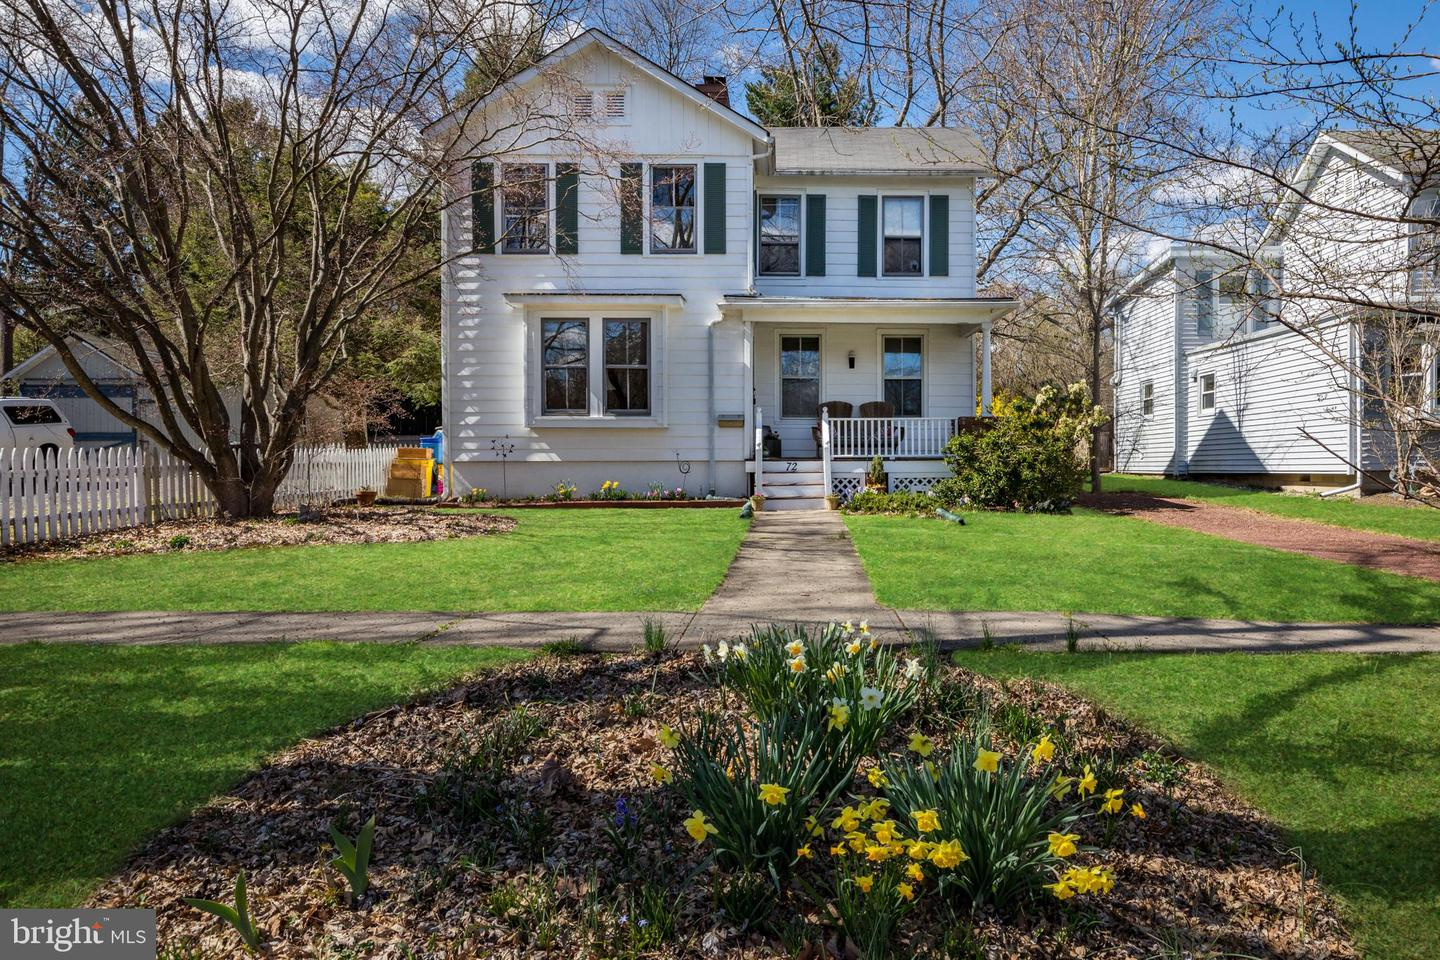 72 MODEL AVE, HOPEWELL, NJ 08525